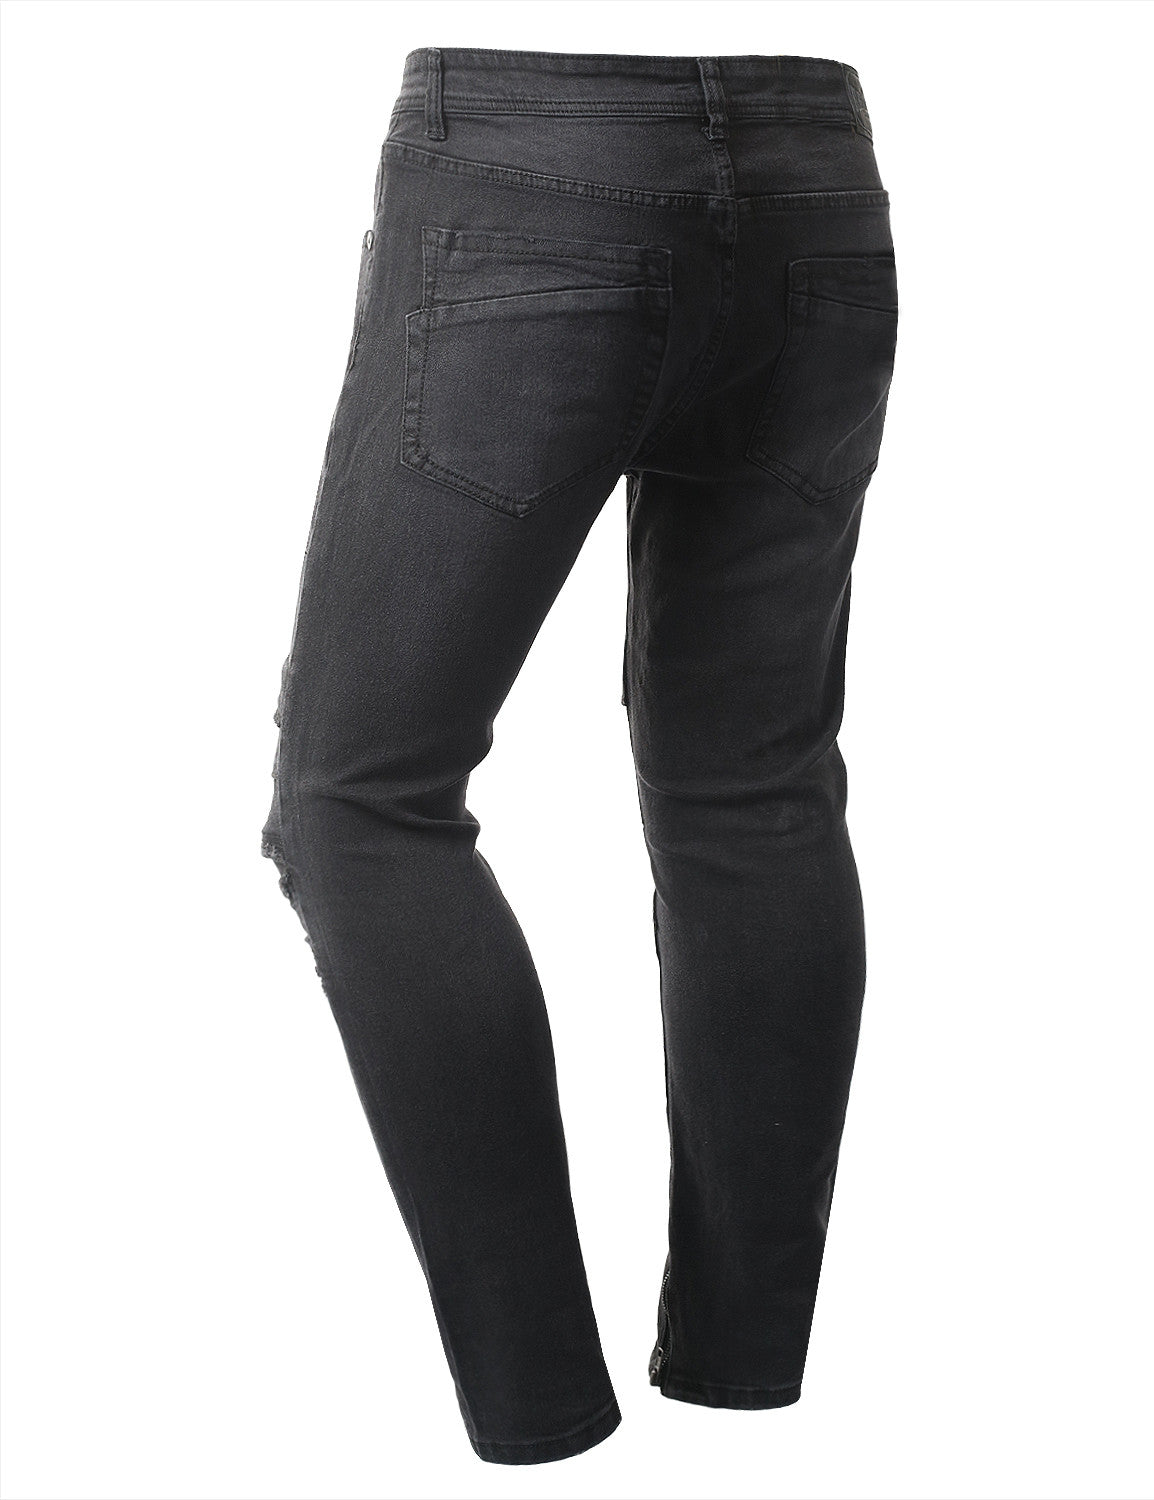 BLACK Premium Denim Ankle Skinny Jeans - URBANCREWS